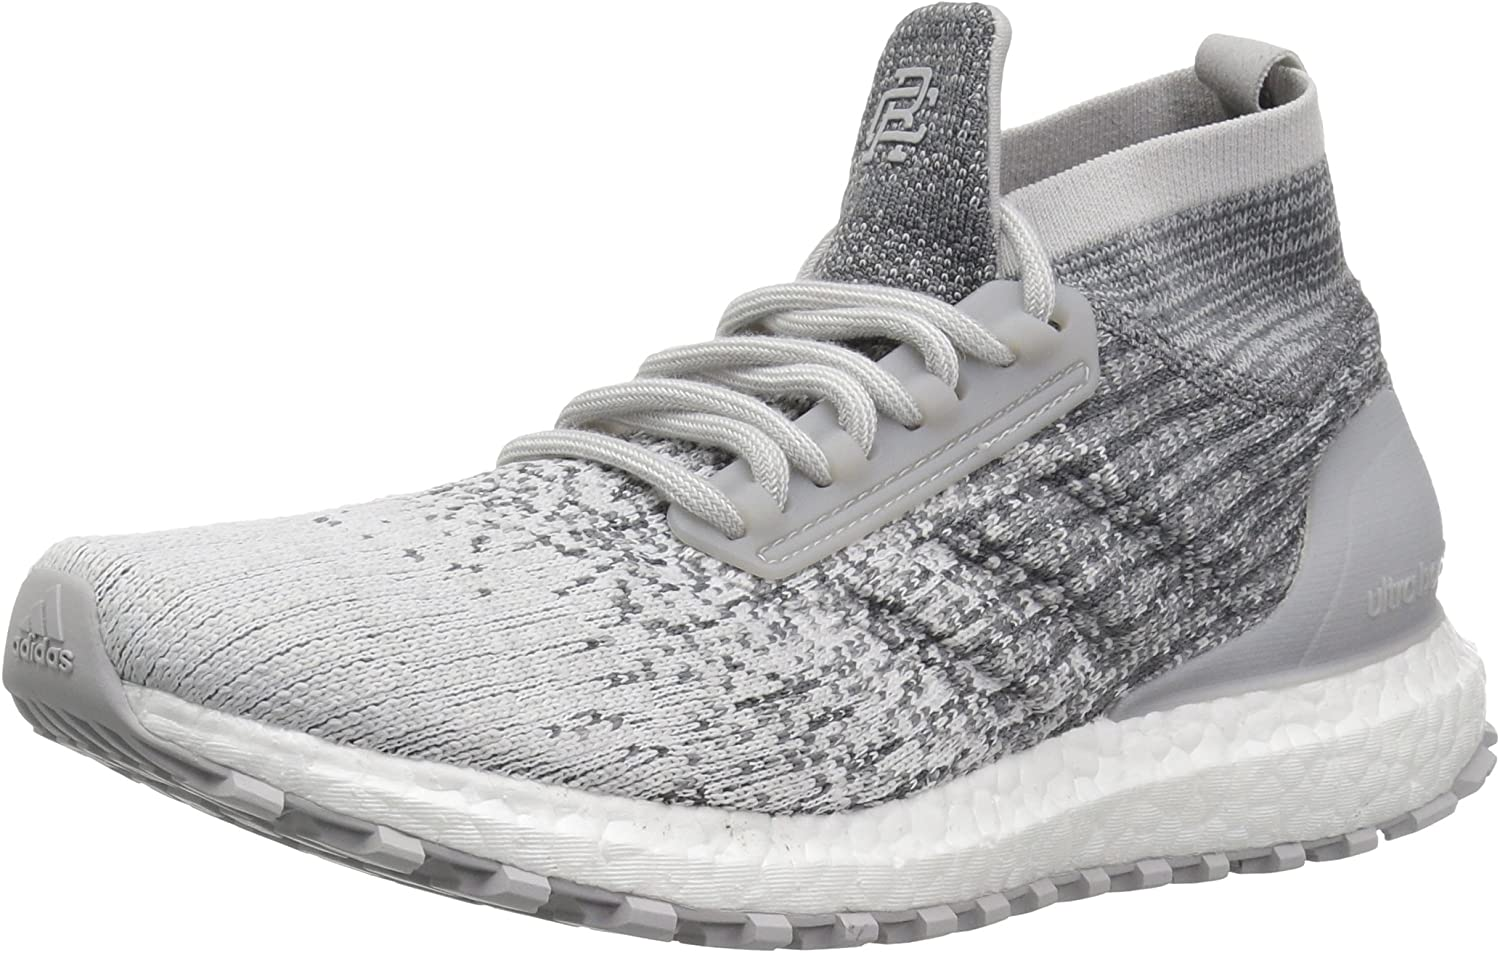 Adidas X Reigning Champ Ultraboost All Terrain shoes